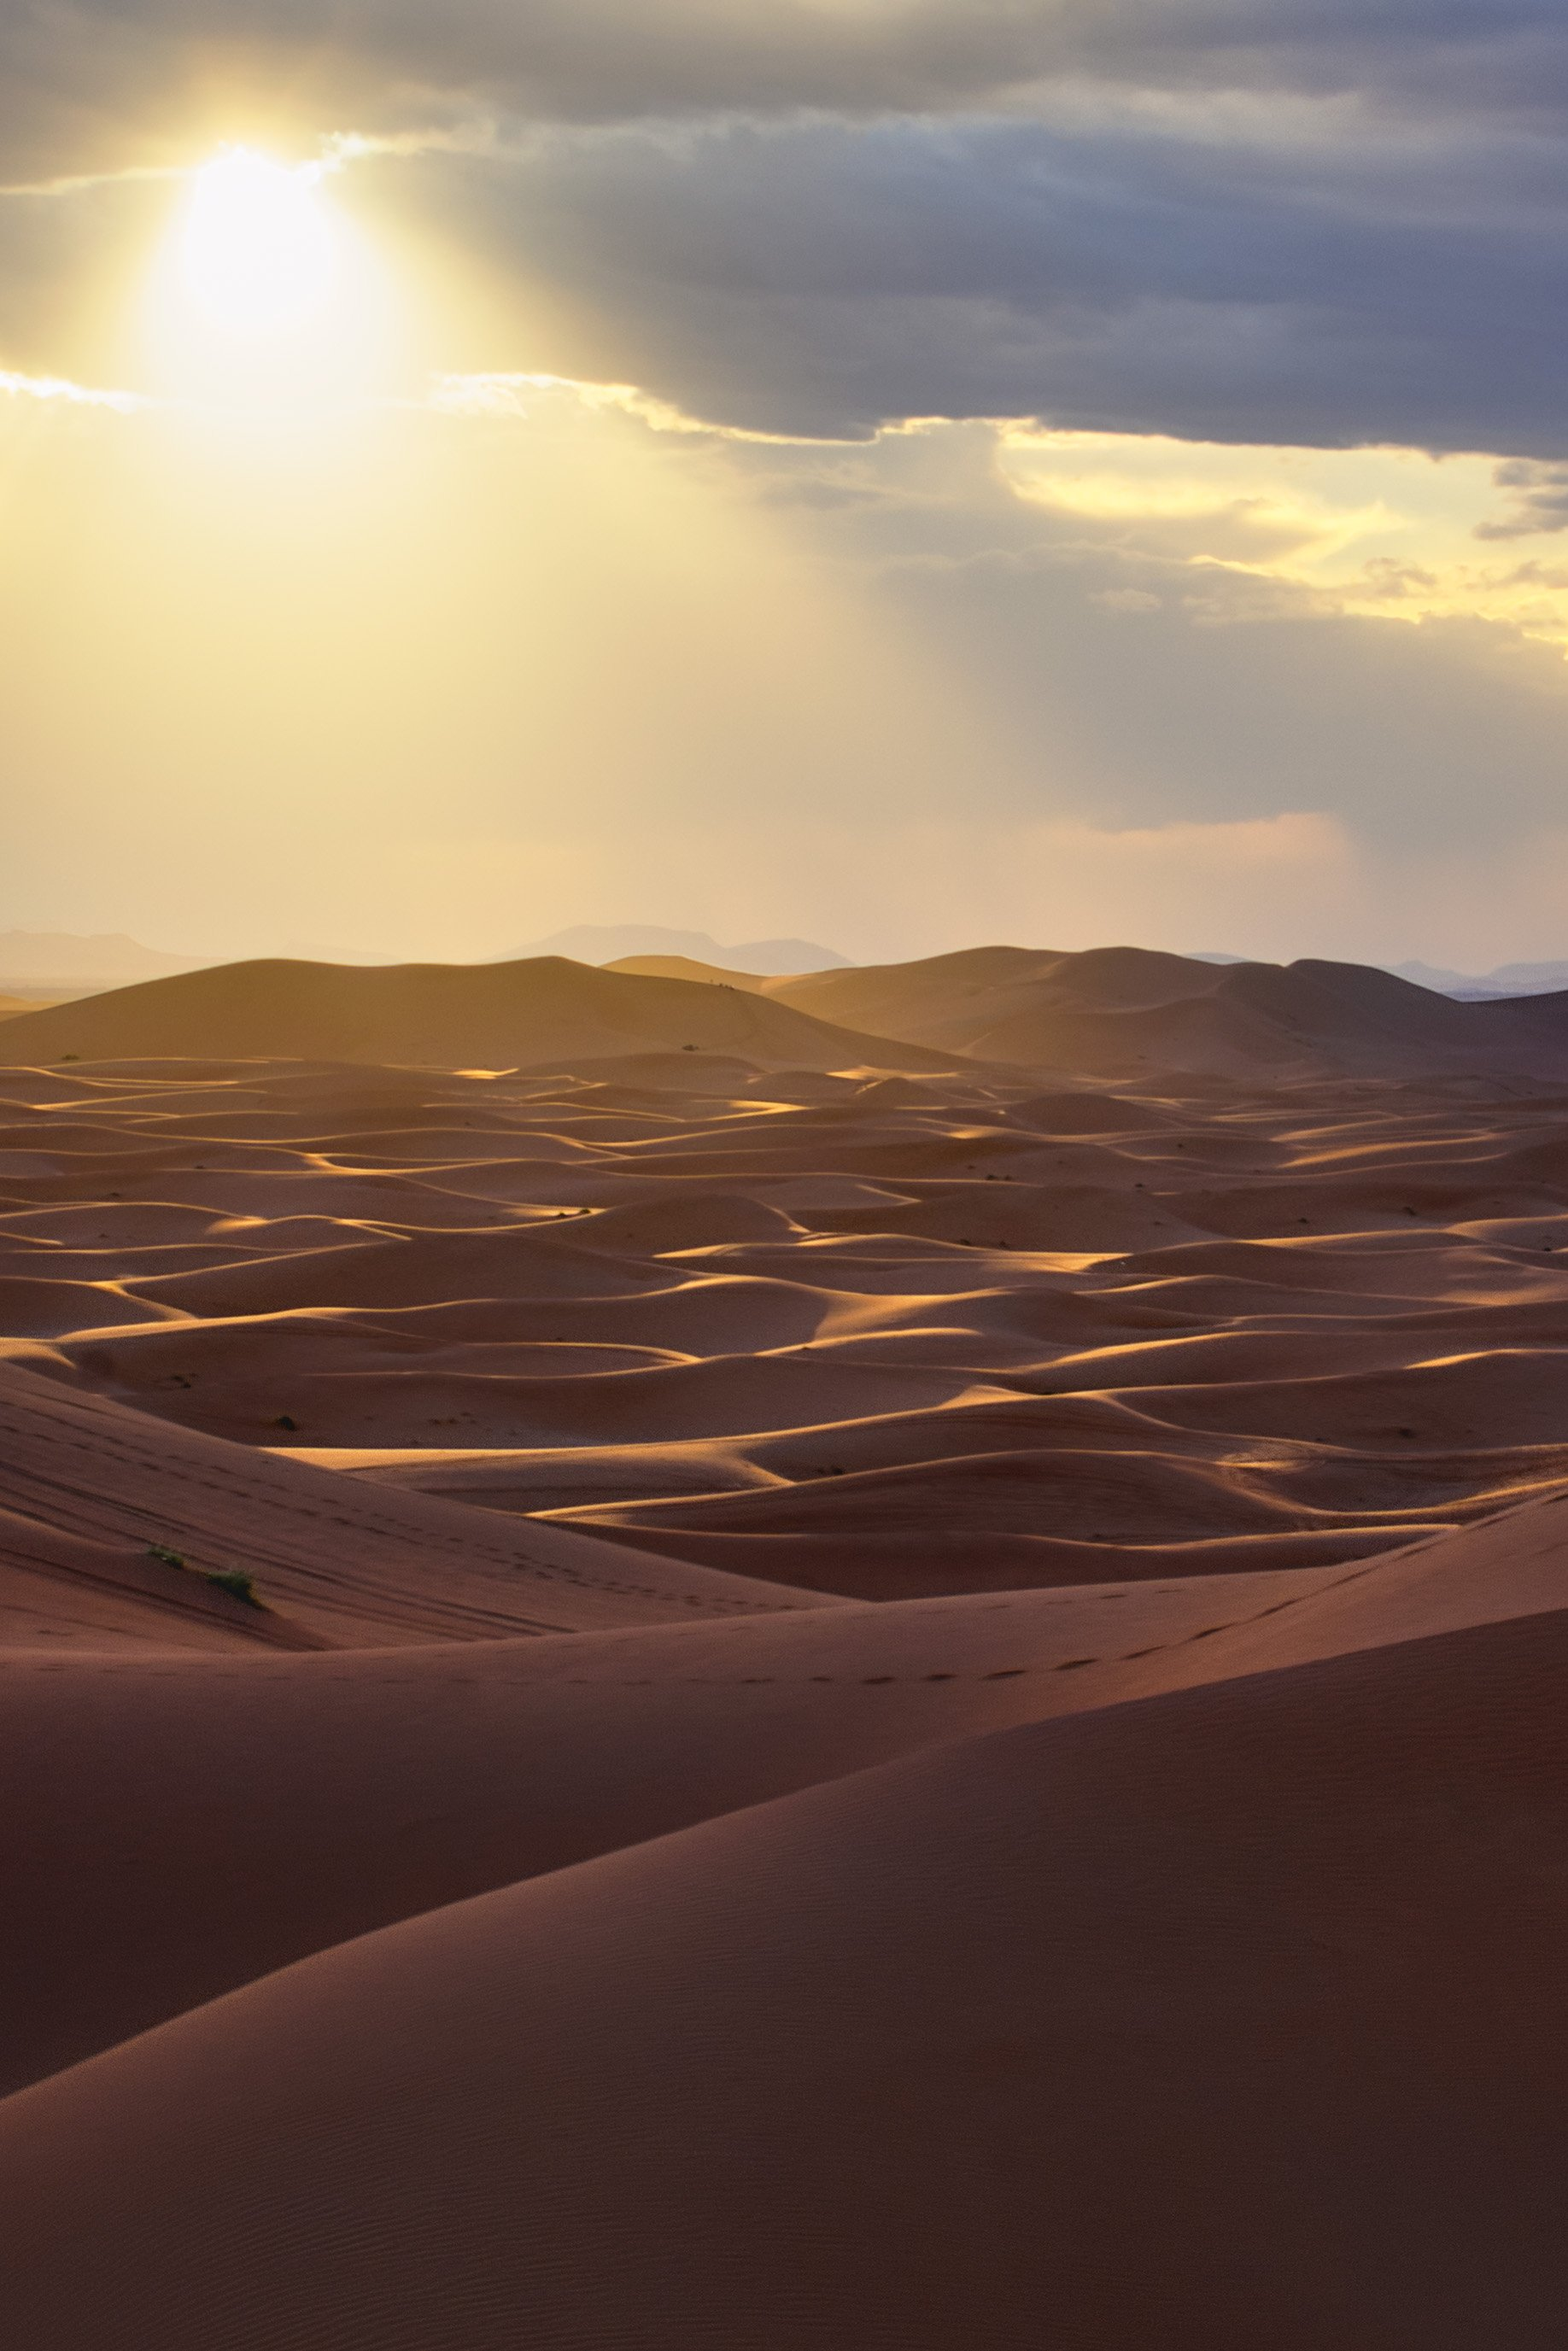 A storm over Erg Chebbi Desert in the Sahara Desert of Morocco paints the dunes in soft light moments before we run for cover from the rain.